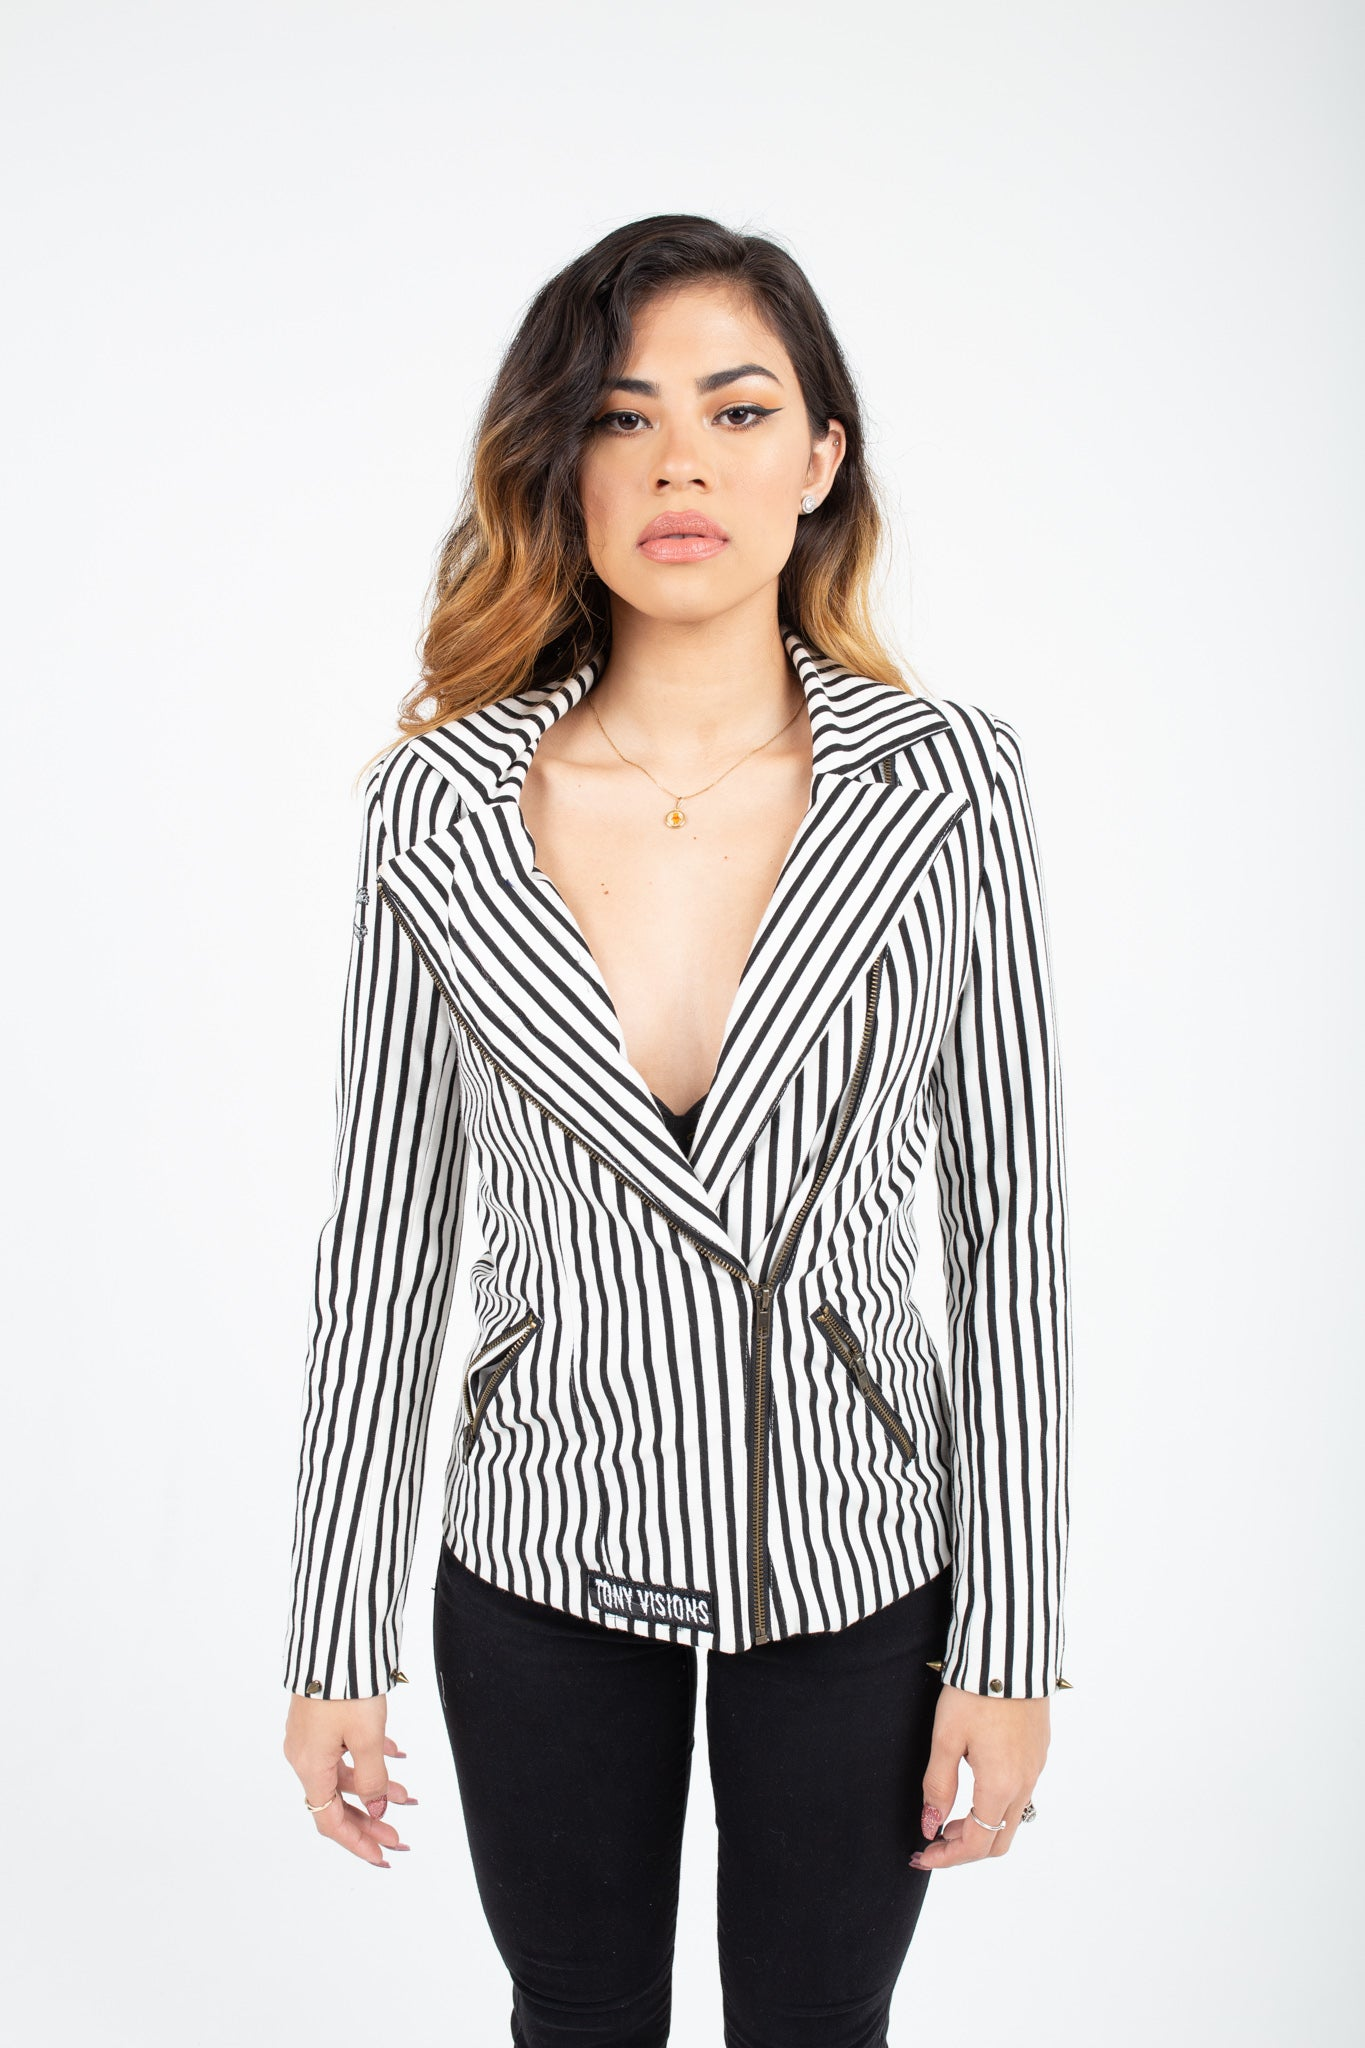 Skulls and Stripes blazer